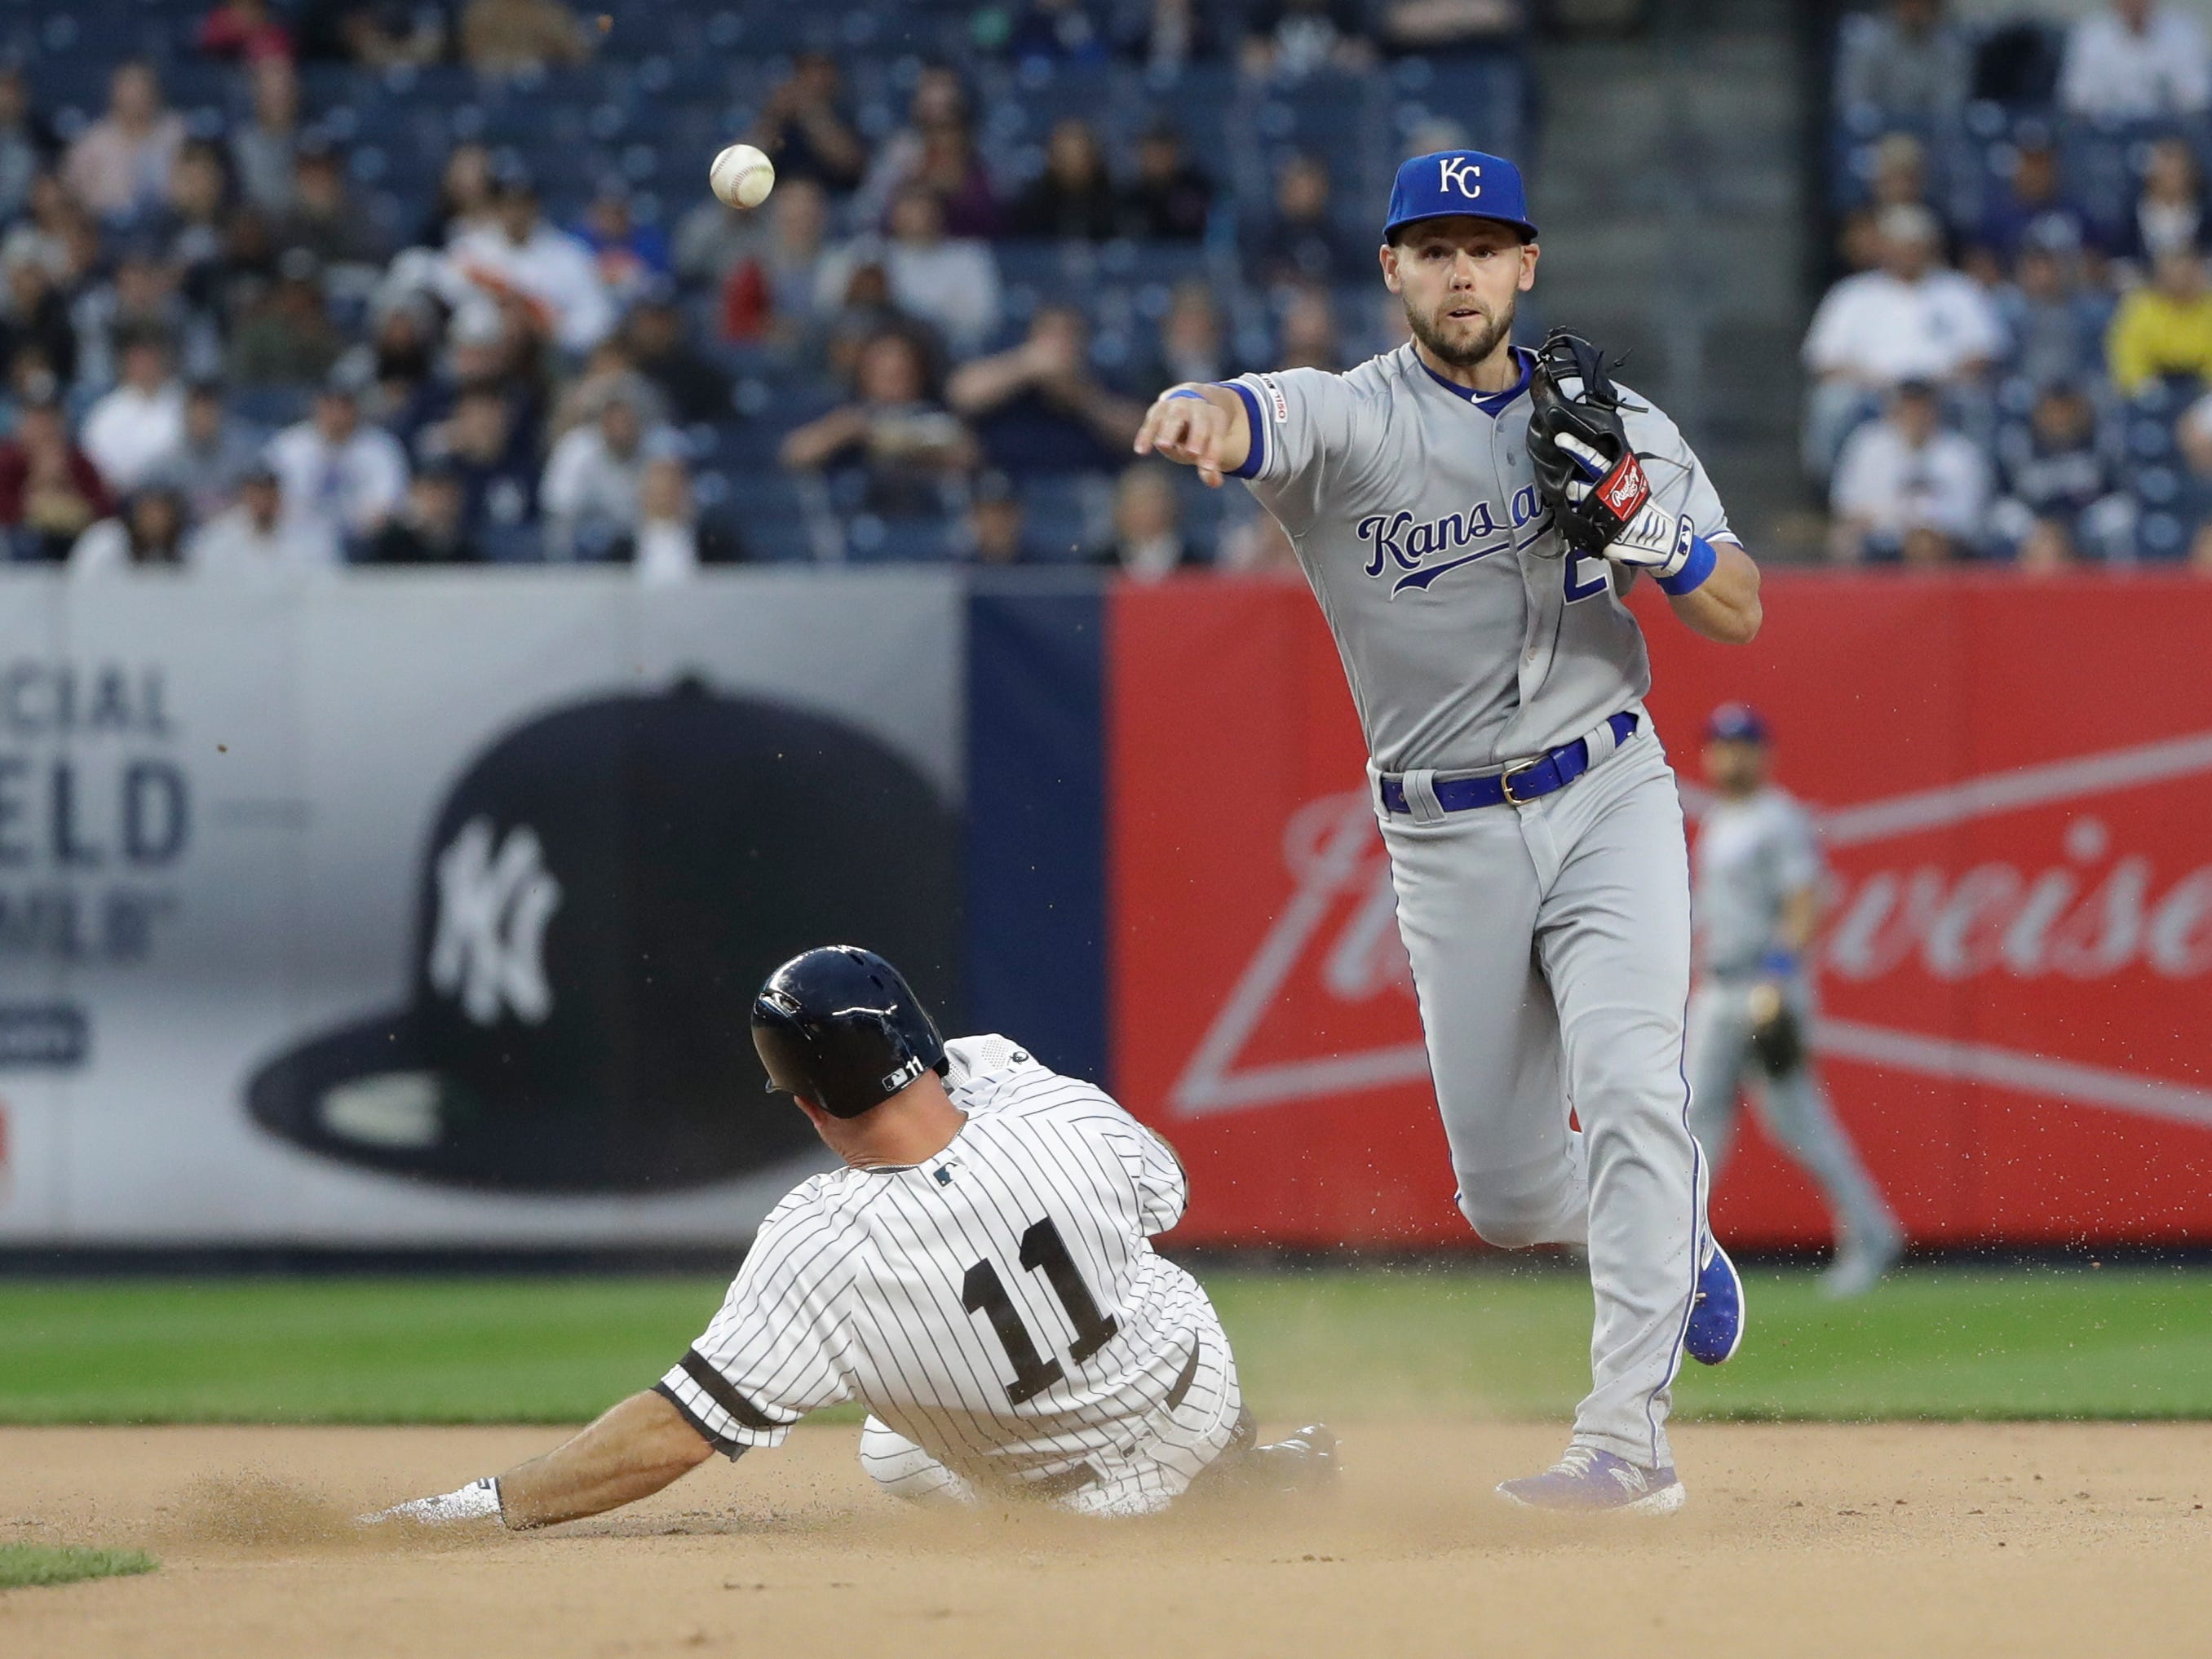 Kansas City Royals' Chris Owings, right, throws out New York Yankees' Aaron Judge at first base after forcing out Brett Gardner, left, for a double play during the first inning of a baseball game Friday, April 19, 2019, in New York.